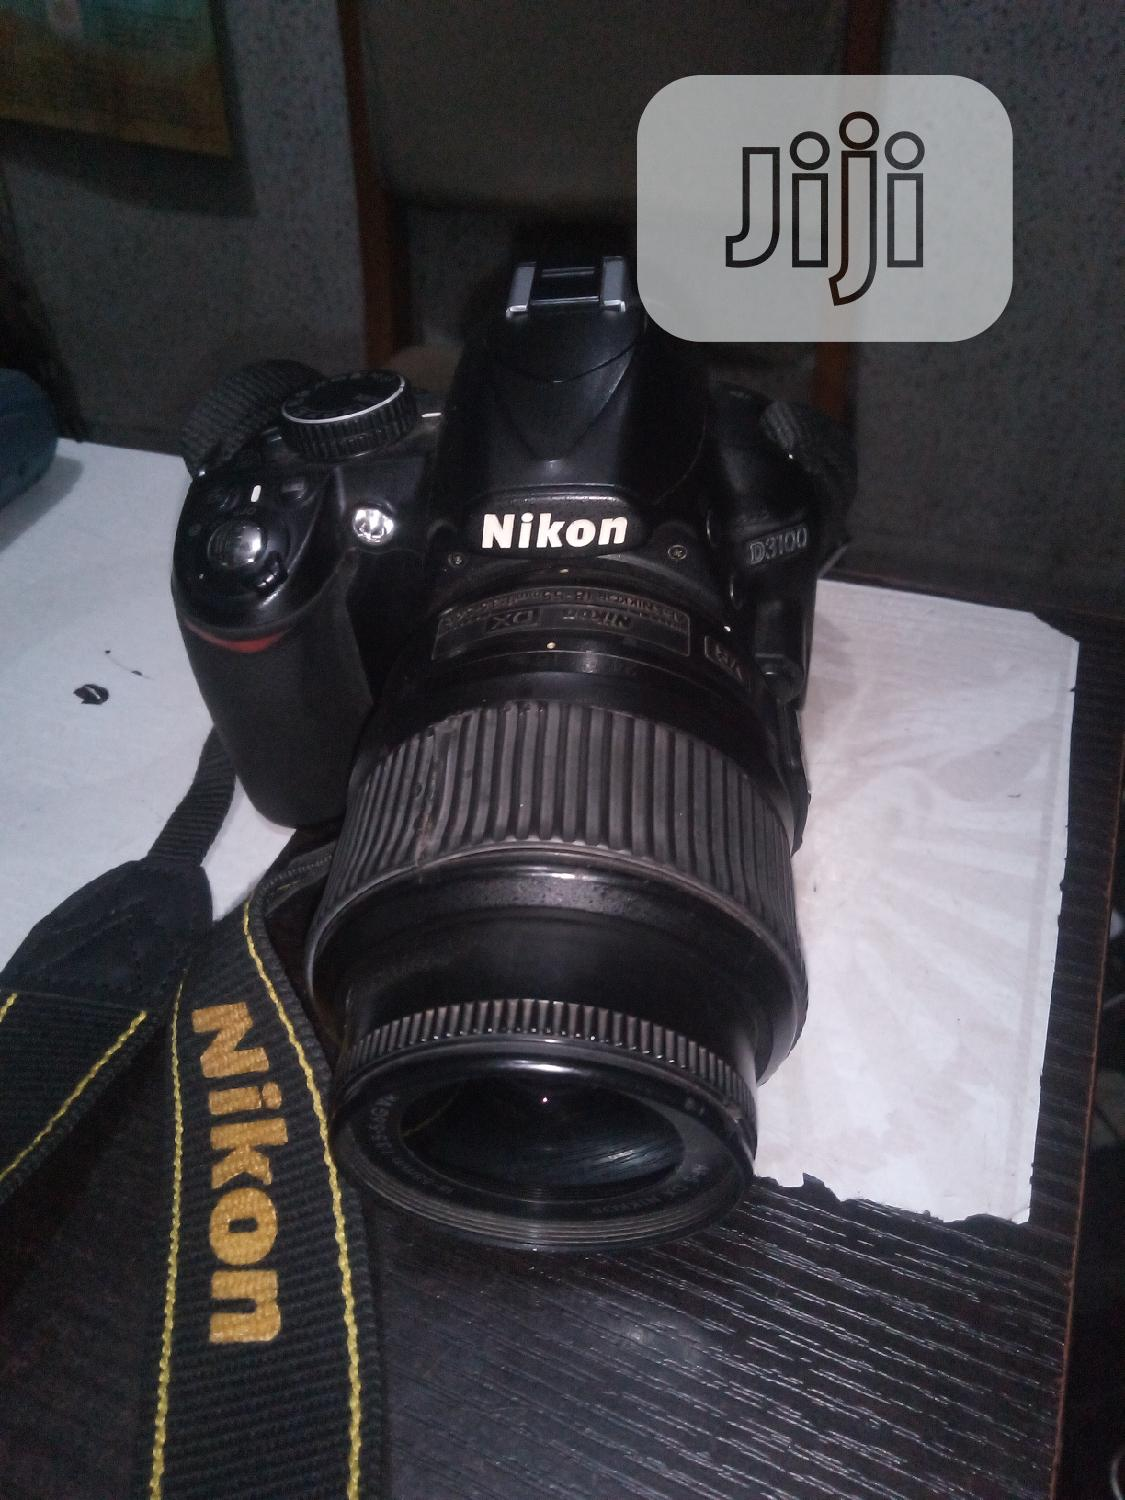 Nikon D3100 With Video Recorder With Good Quality | Accessories & Supplies for Electronics for sale in Ikeja, Lagos State, Nigeria